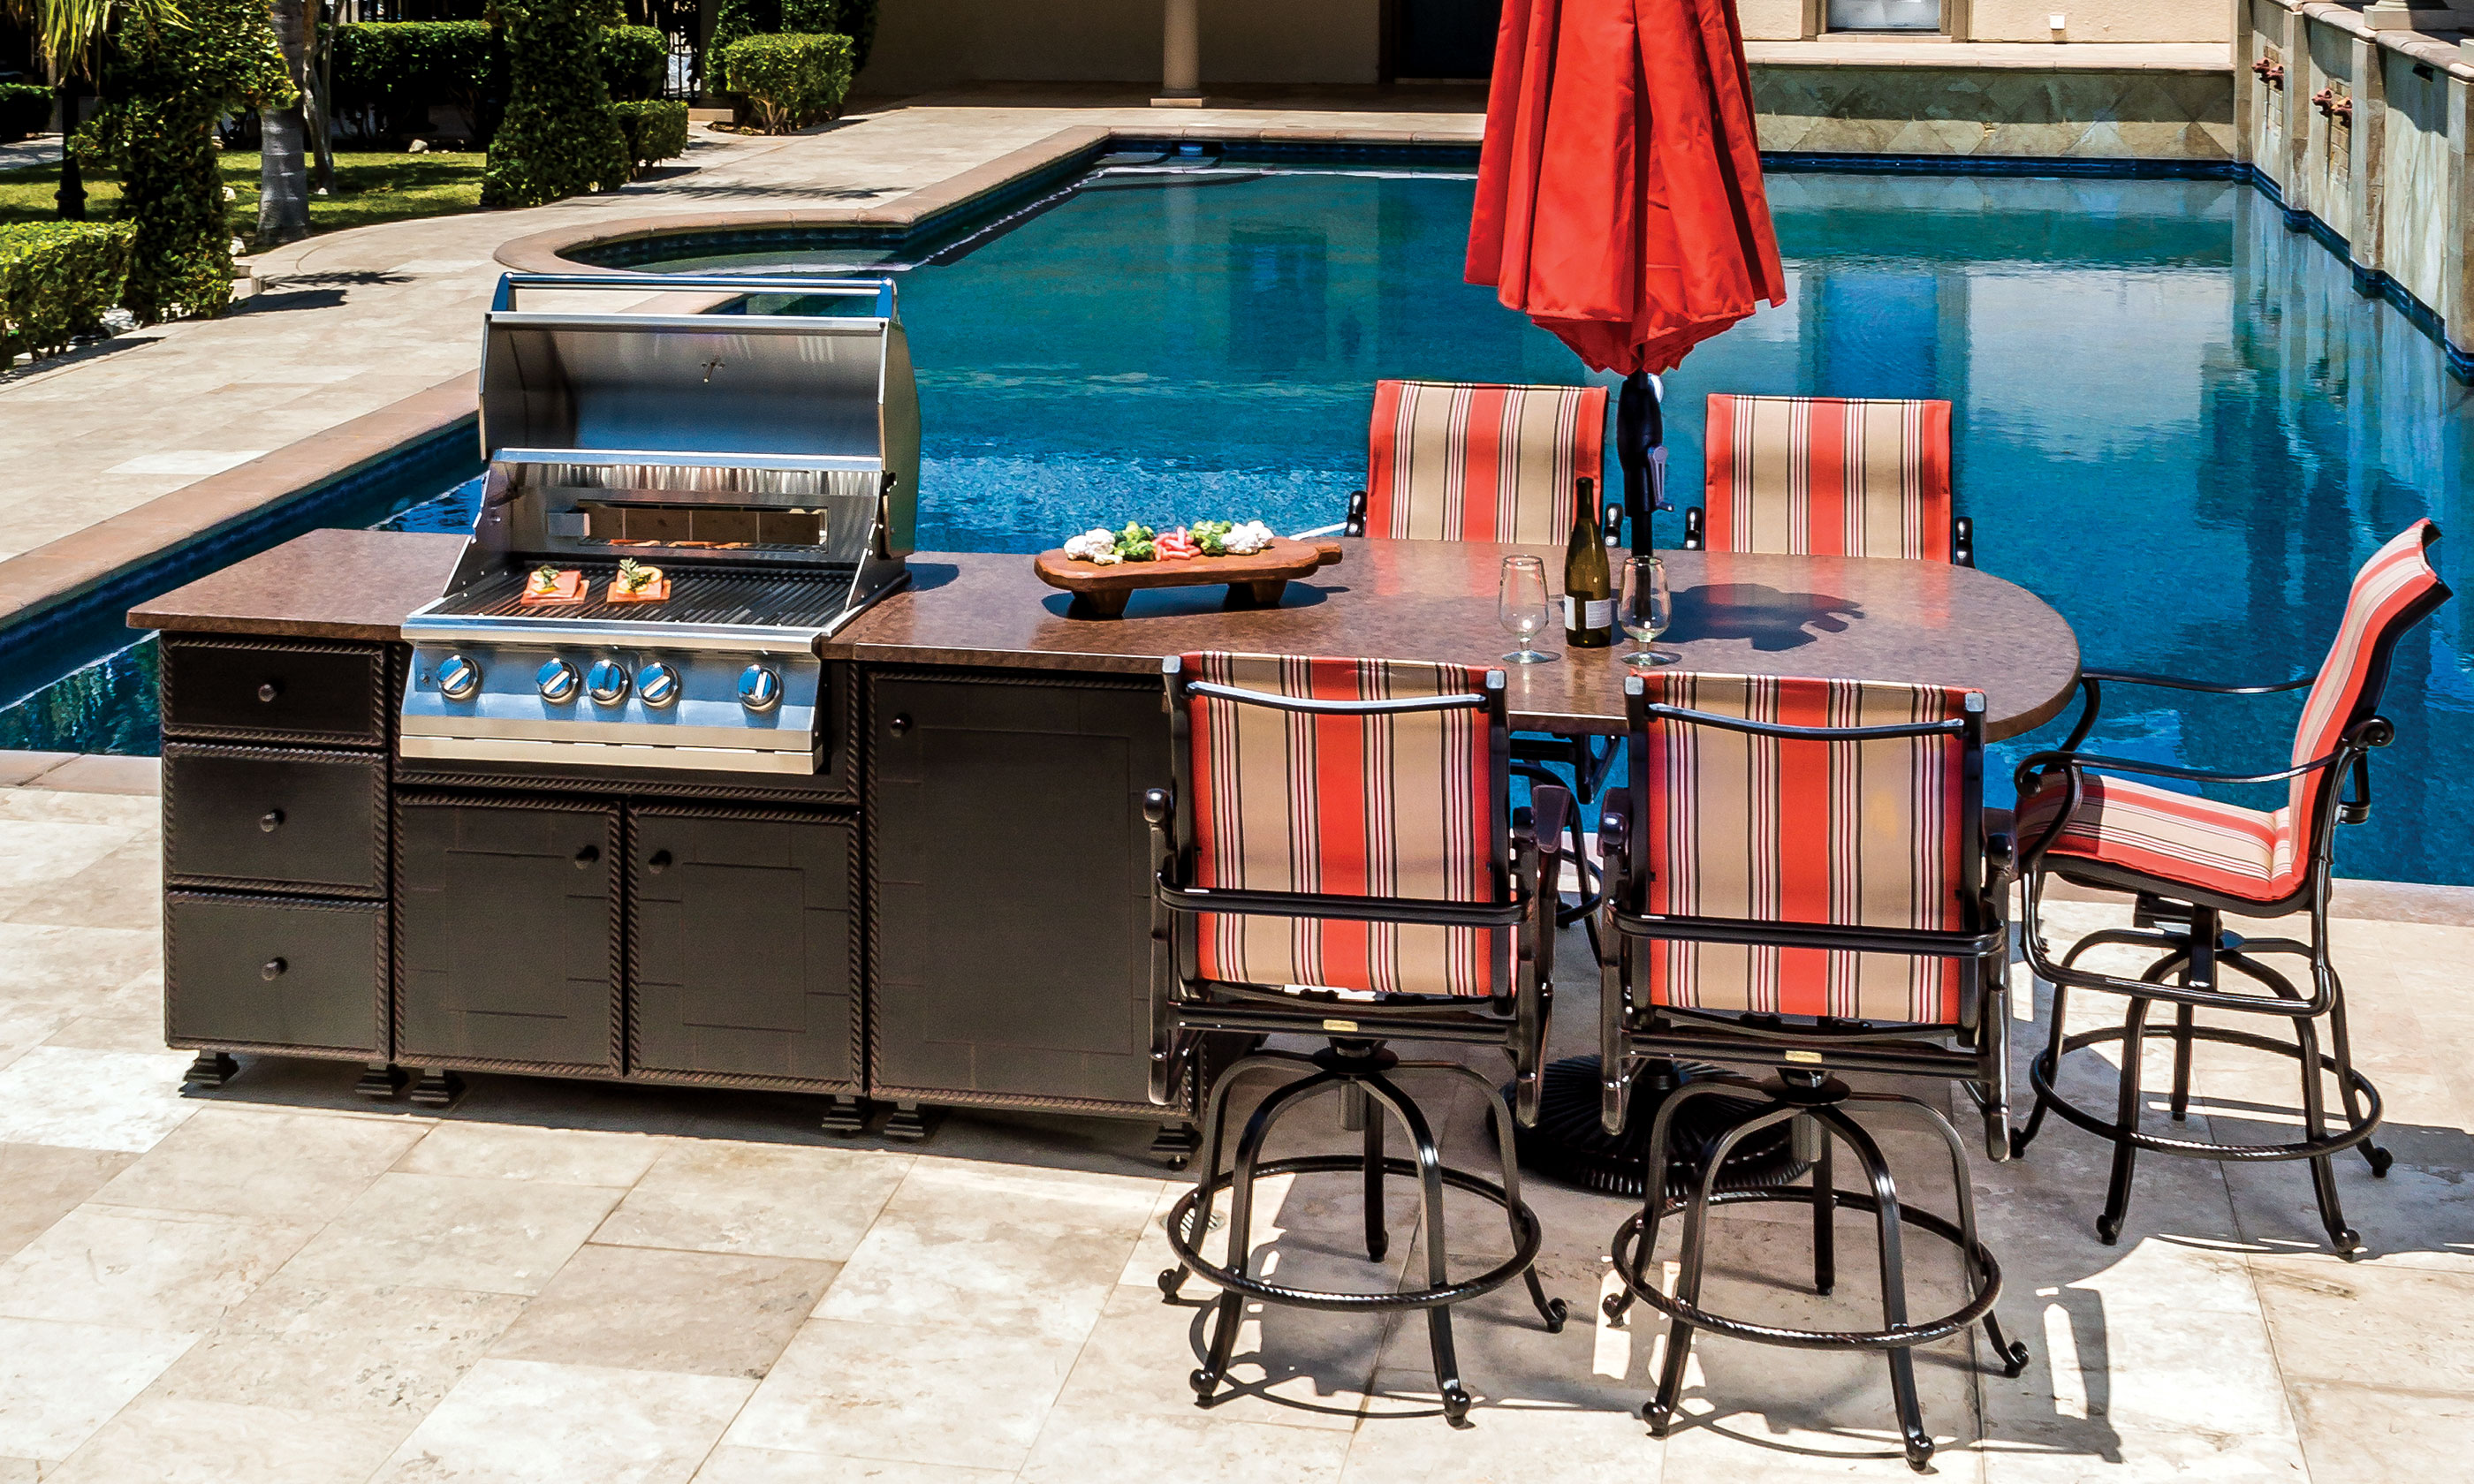 Kitchen Island Grill outdoor kitchens > kitchen islands > grill & seating island